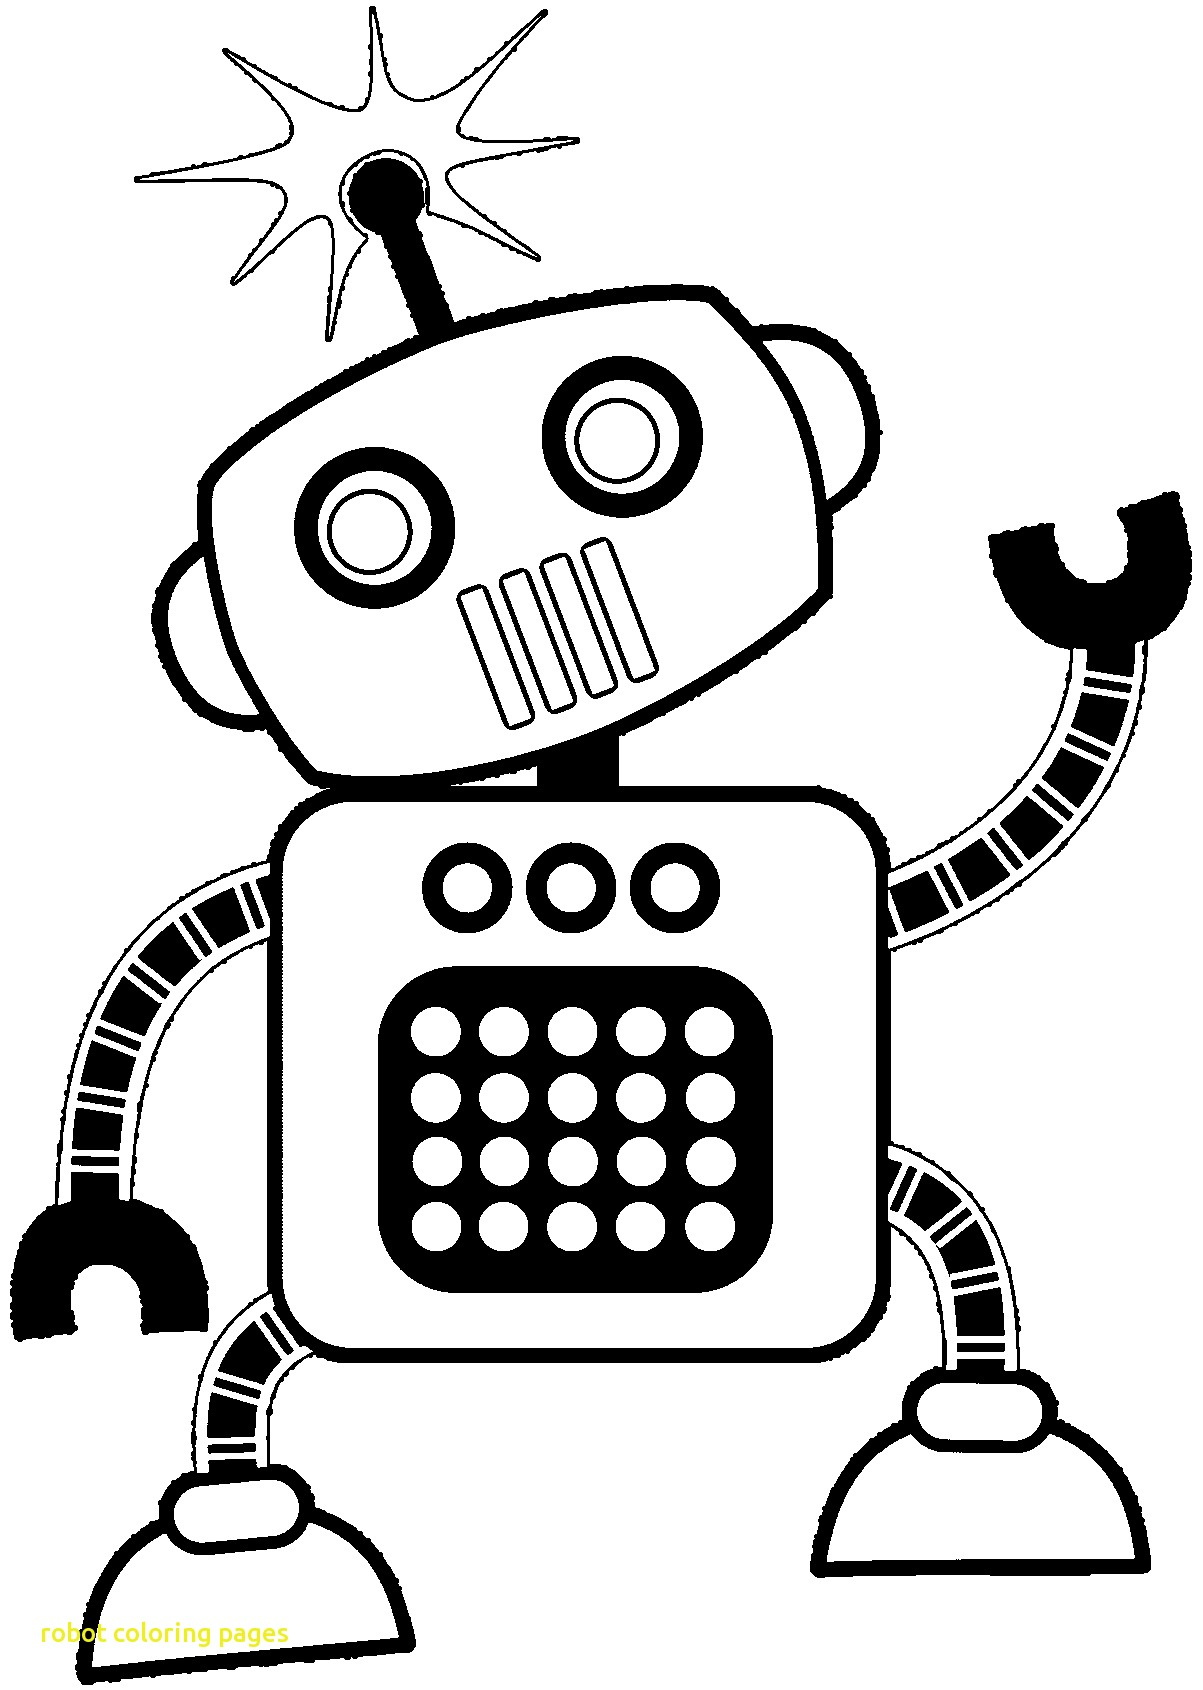 coloring sheet robot coloring pages robot astro robots coloring pages for kids to print color coloring coloring robot sheet pages